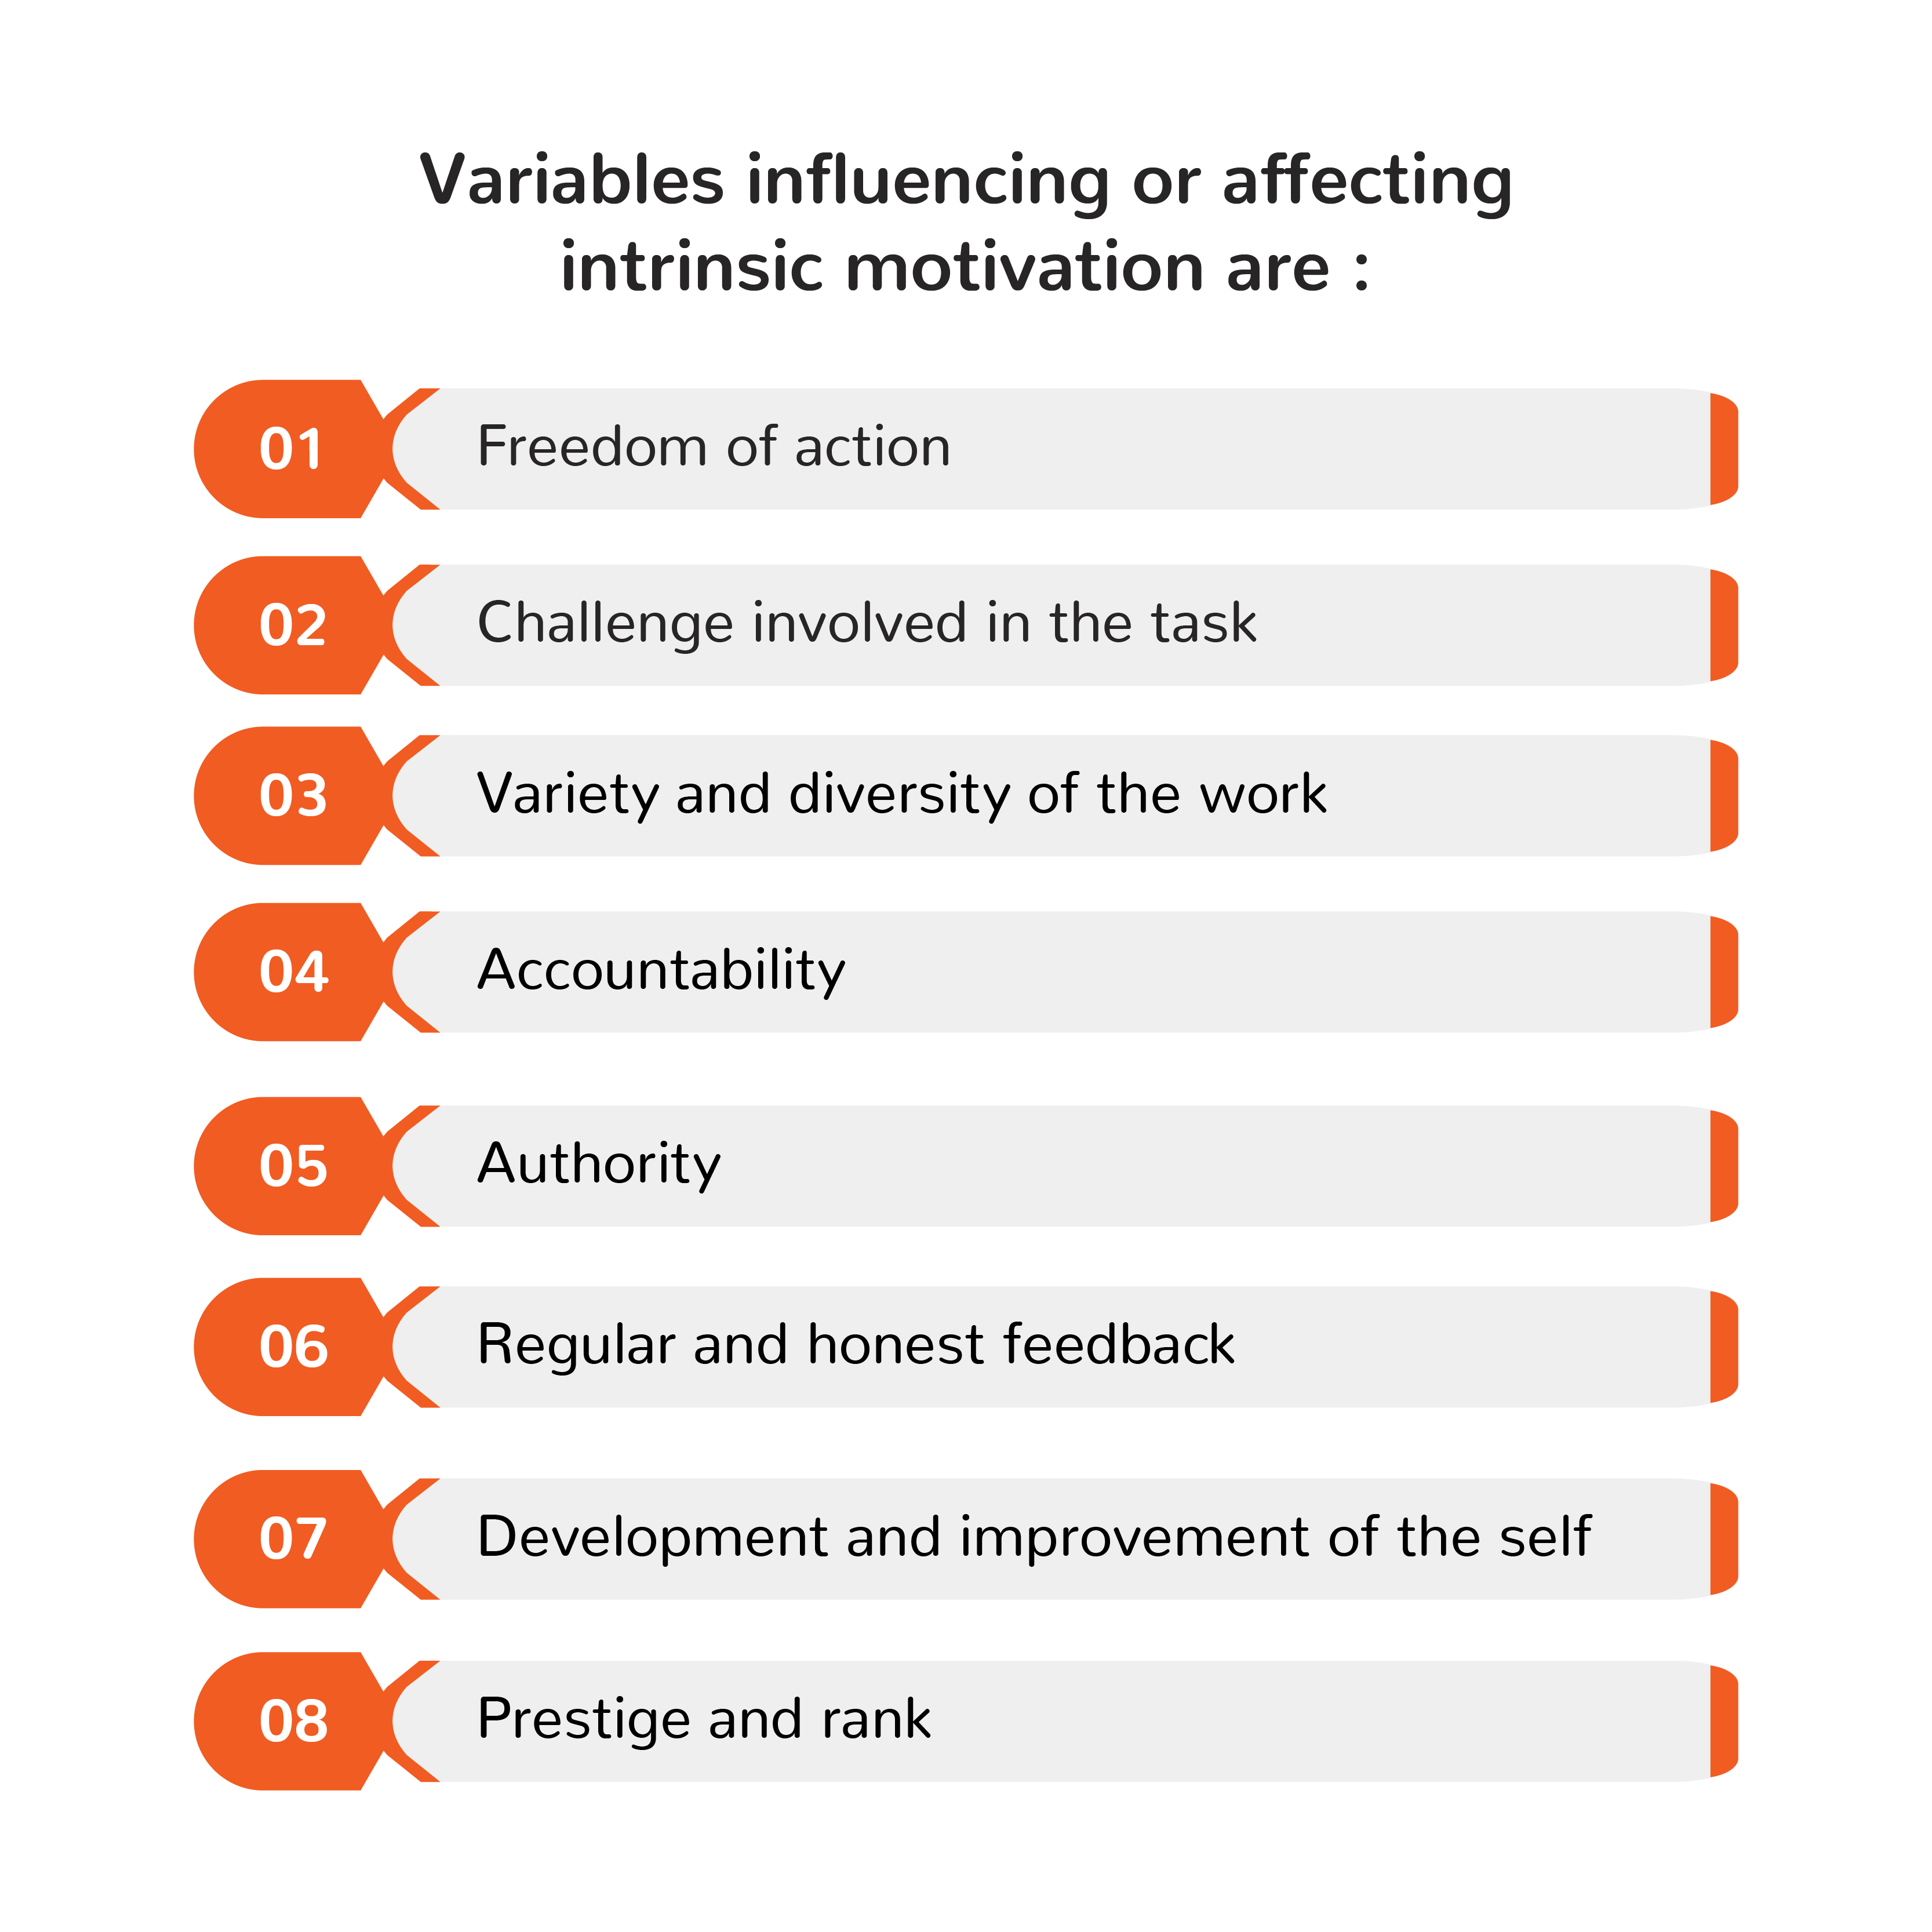 Variables influencing or affecting intrinsic motivation